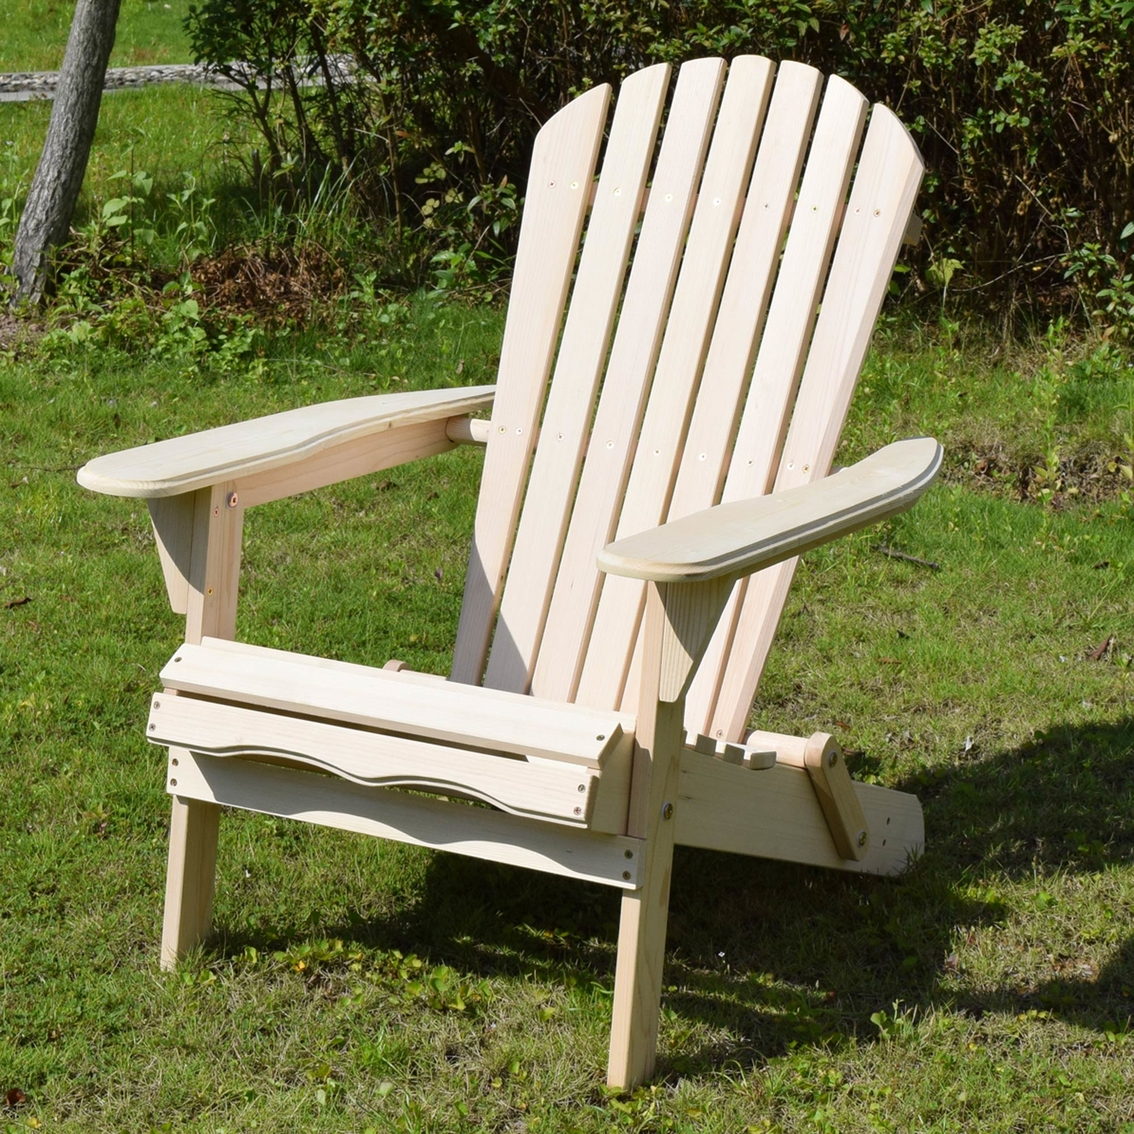 merry garden adirondack chair yellow products foldable kit